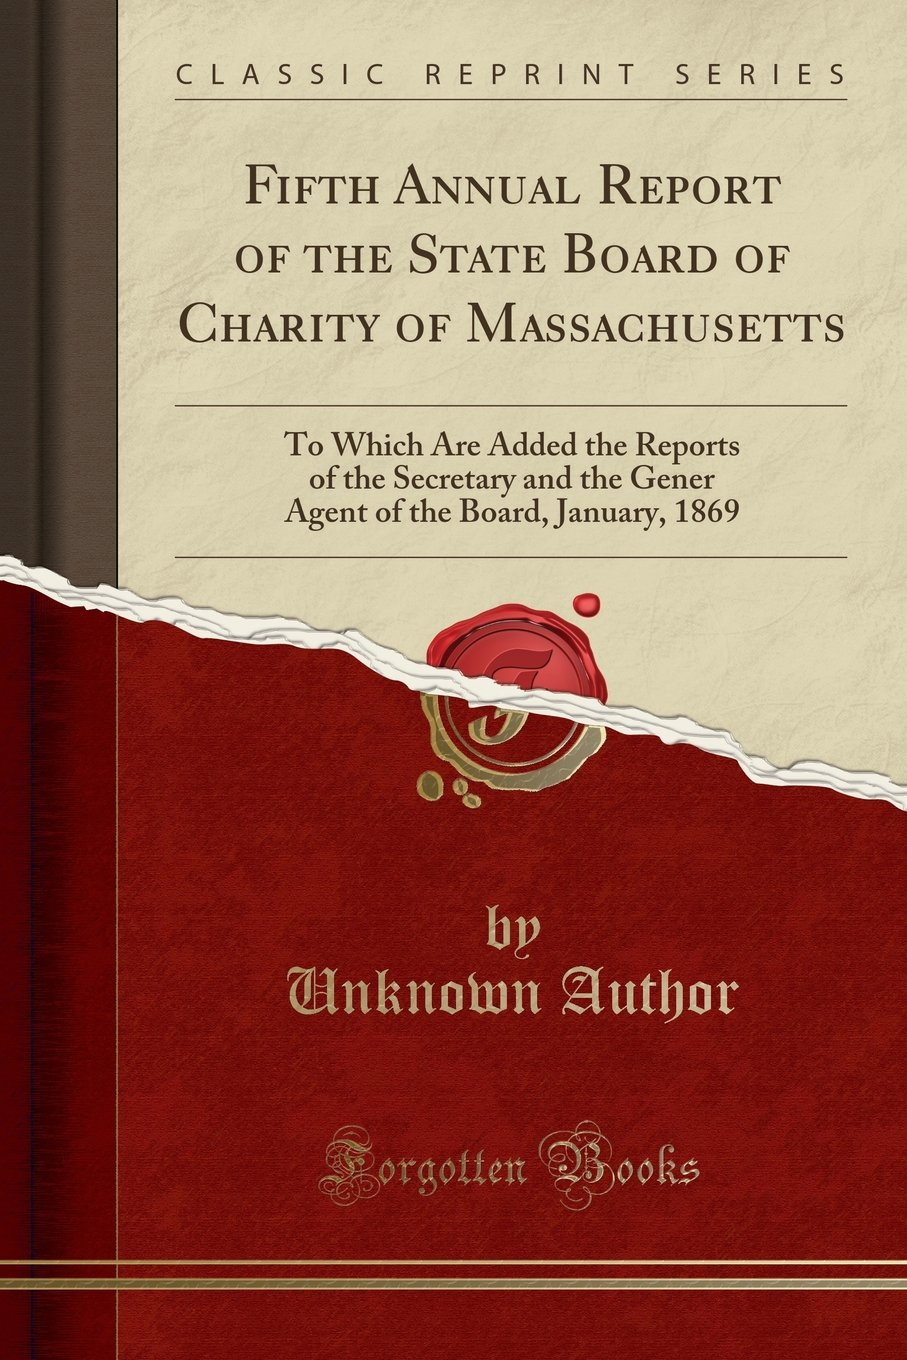 Read Online Fifth Annual Report of the State Board of Charity of Massachusetts: To Which Are Added the Reports of the Secretary and the Gener Agent of the Board, January, 1869 (Classic Reprint) pdf epub